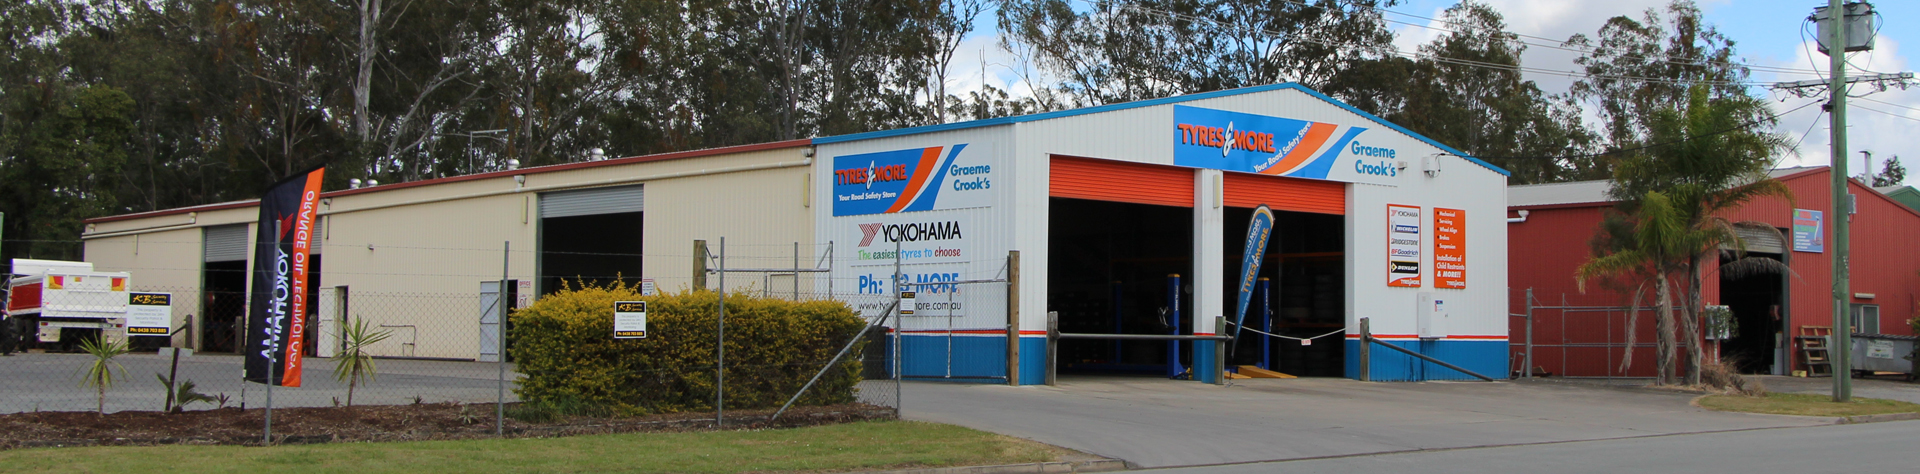 Graeme Crooks Tyres & More Logan Village Store Image